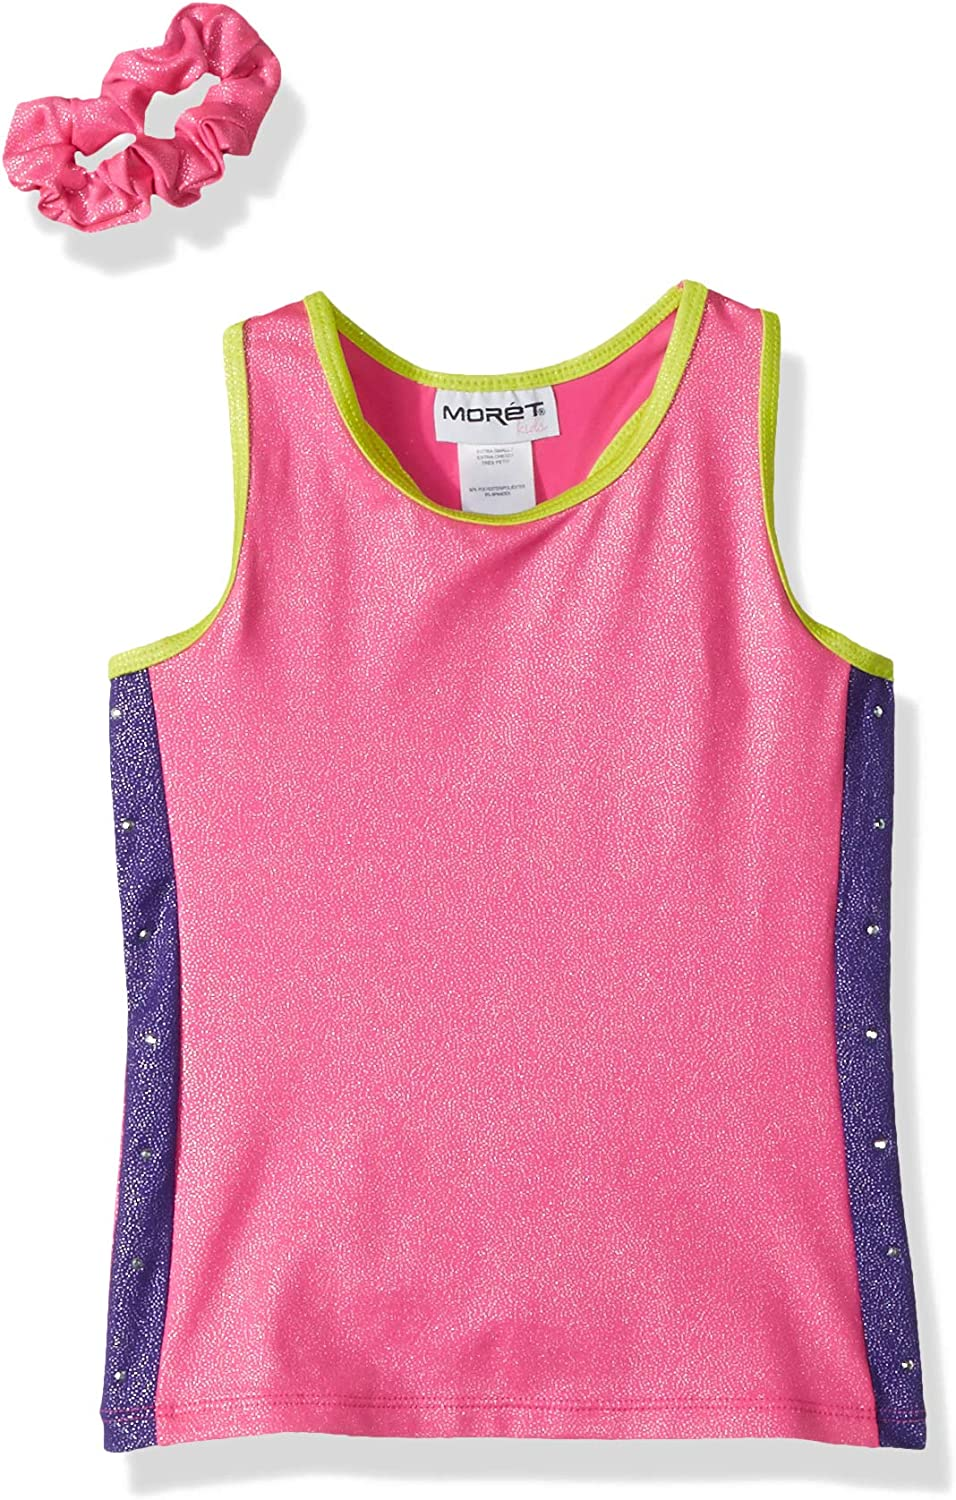 Jacques Moret Girls Gymnastics Tank Top